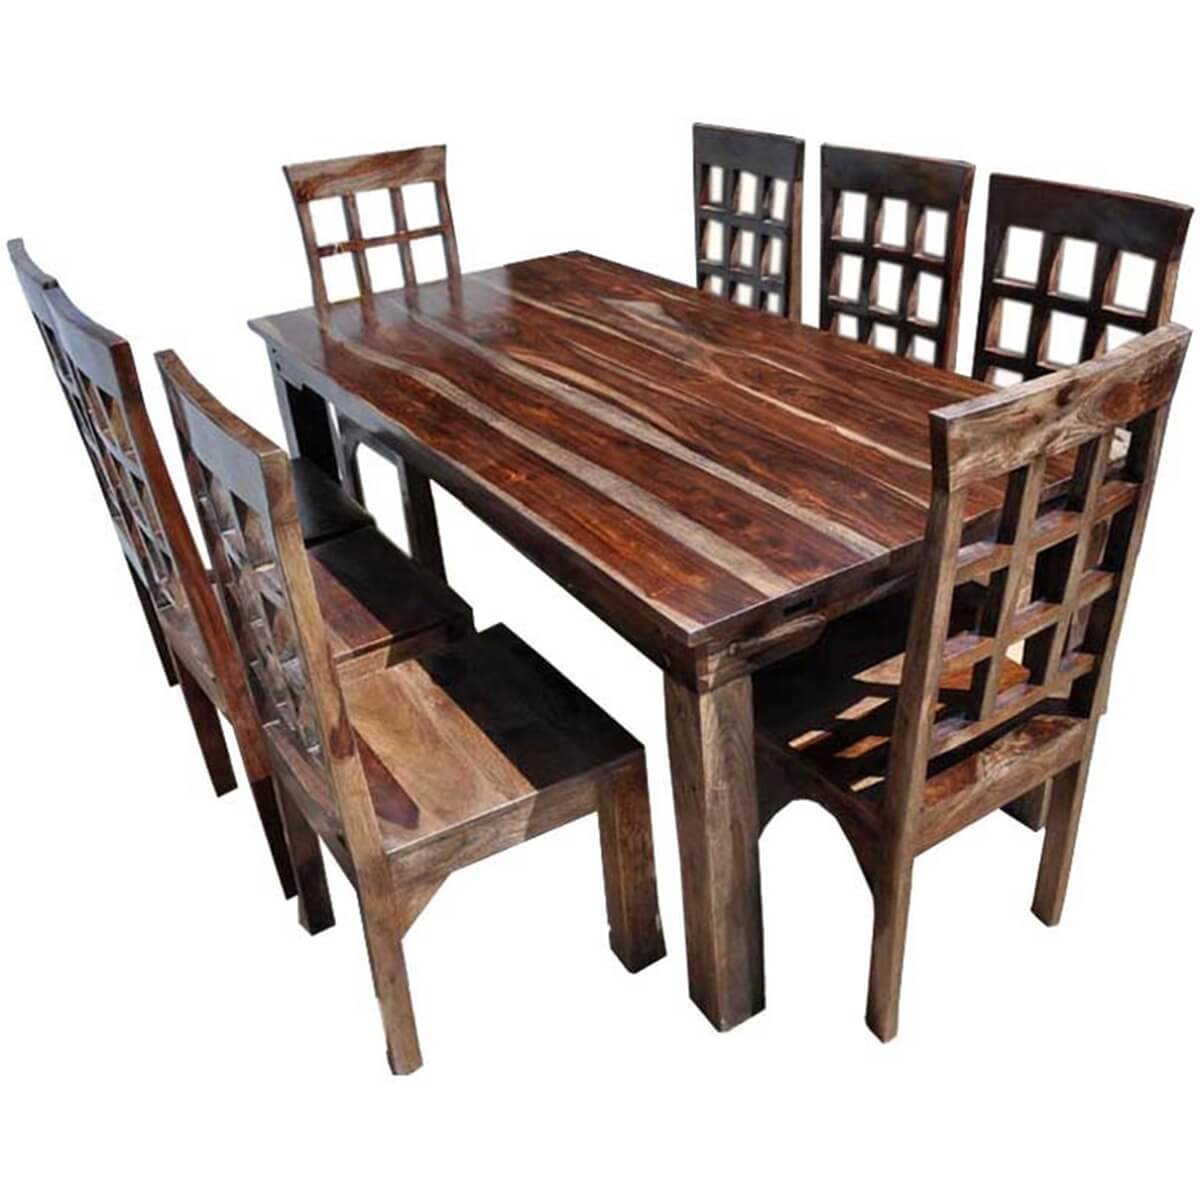 Portland rustic furniture dining room table chair set w for Furniture dining table